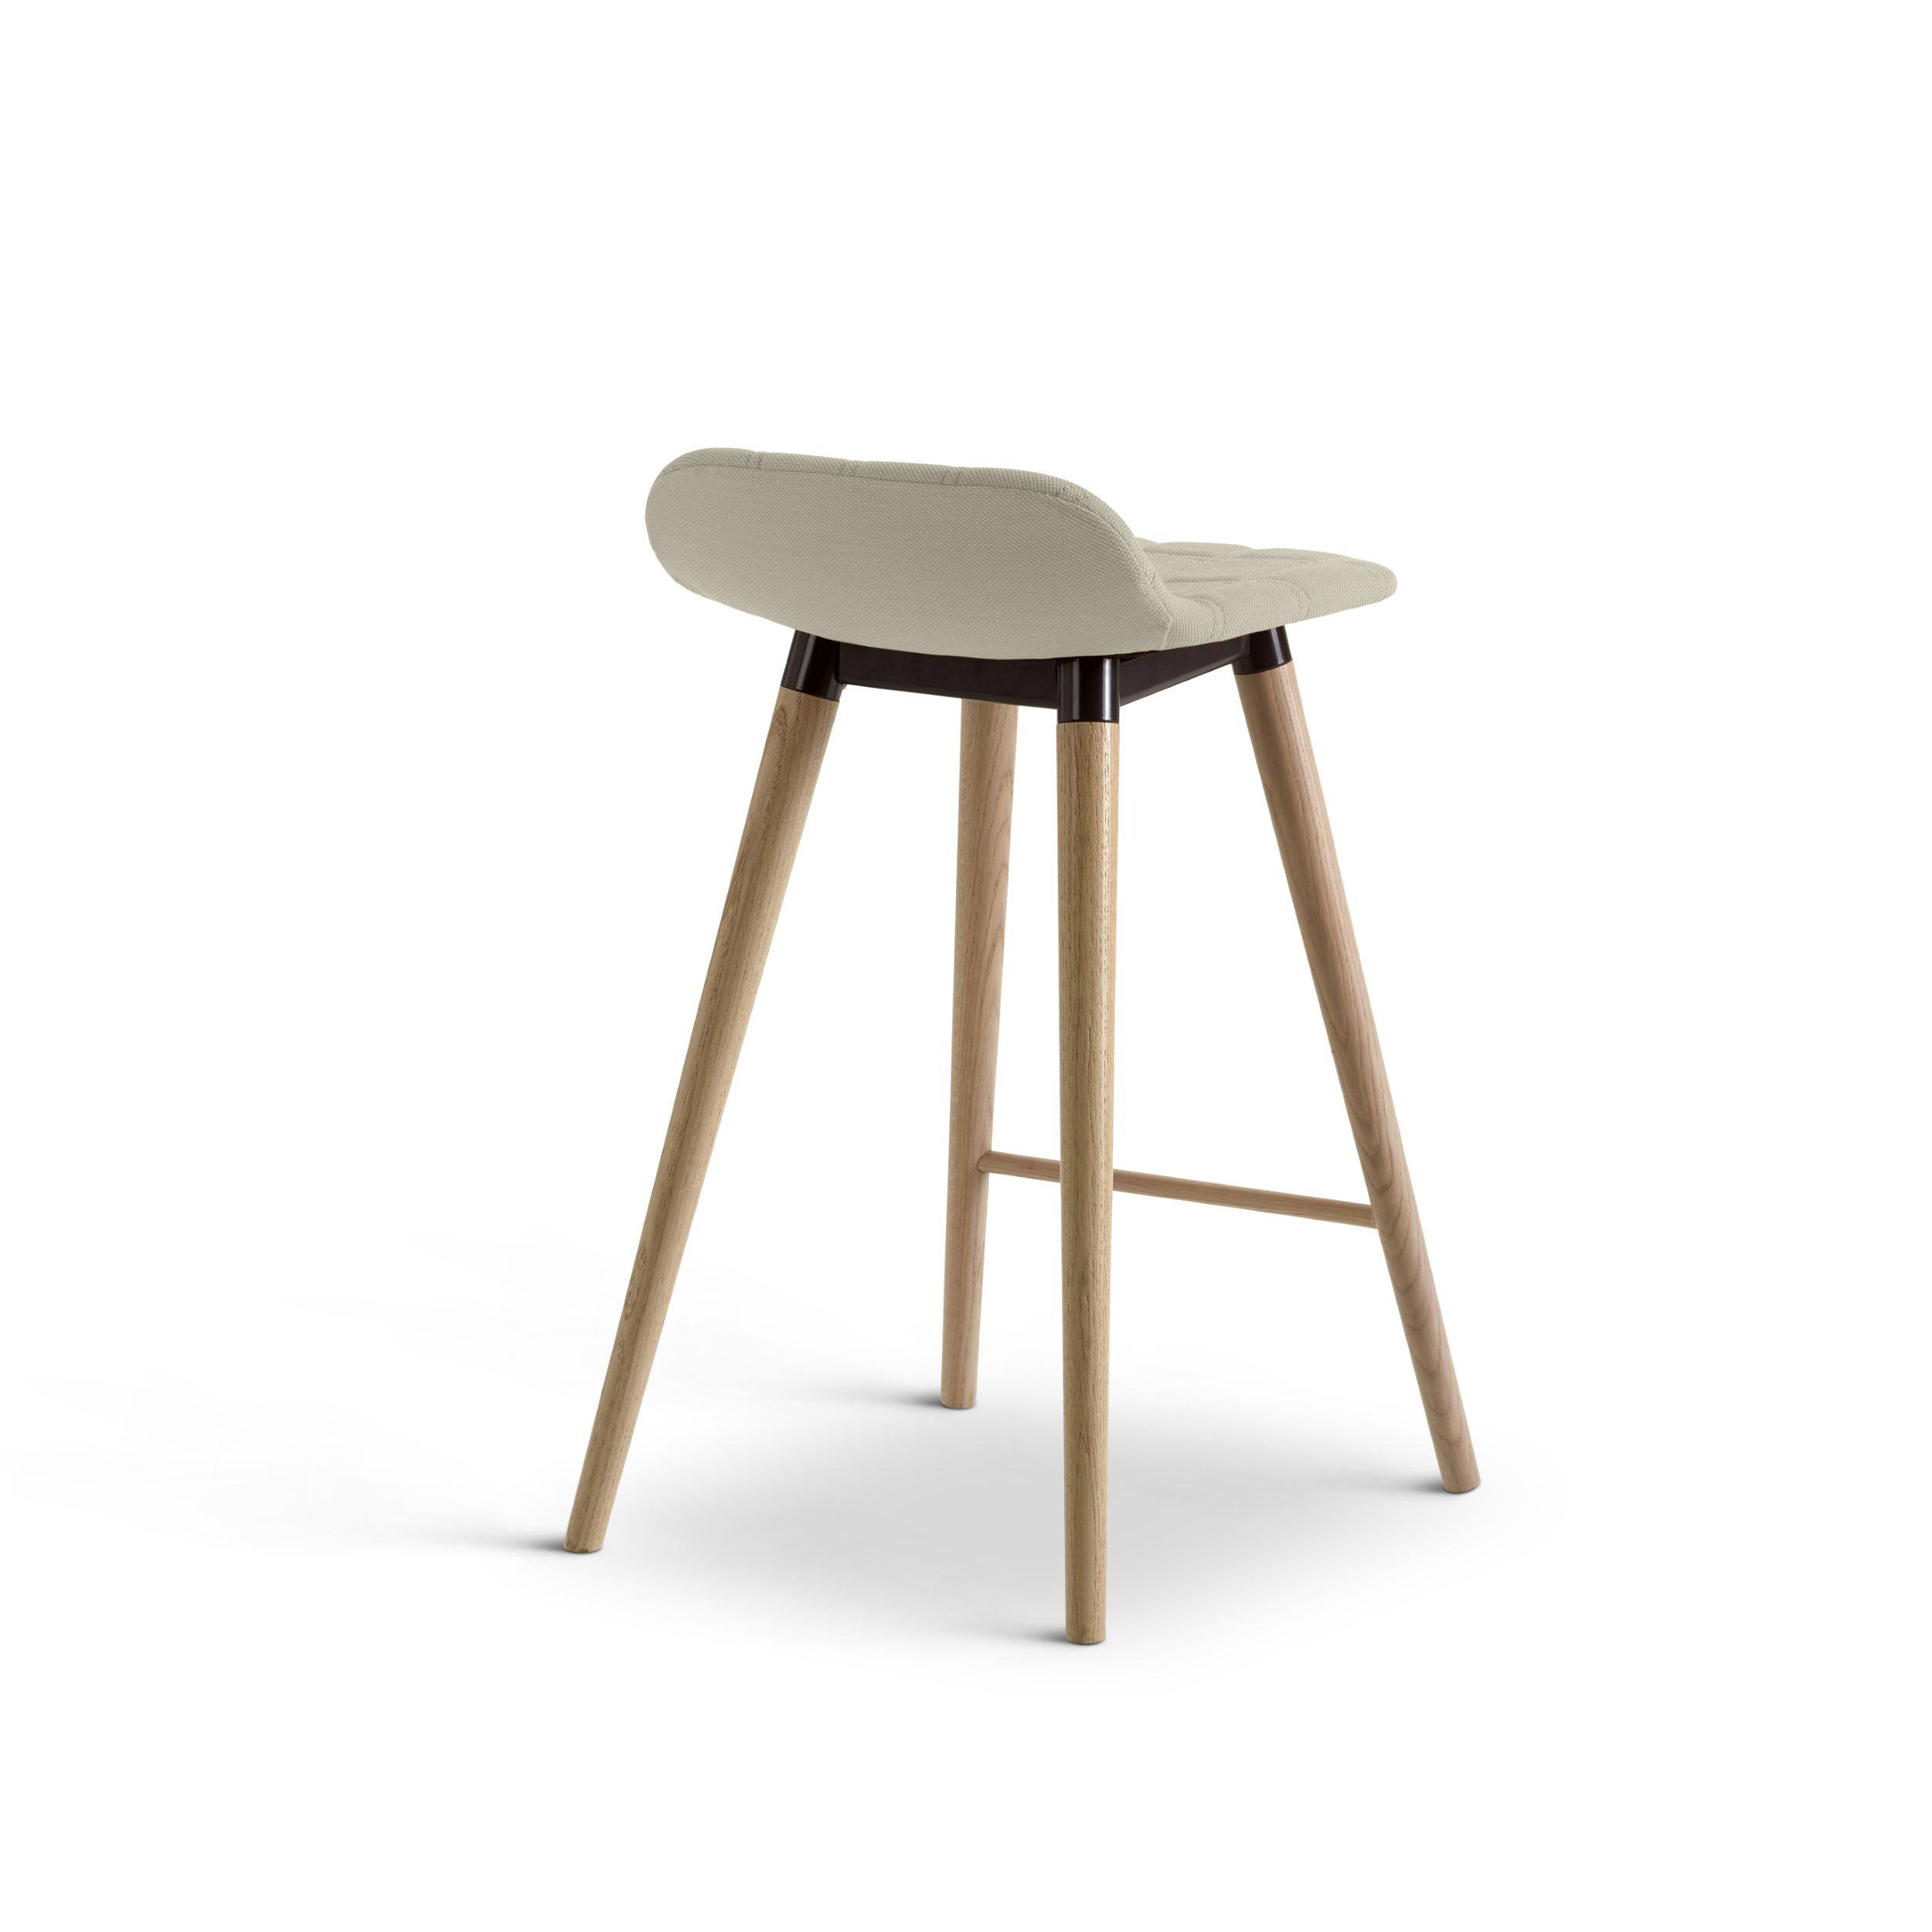 Wood Stools Product ~ Bop wood bar stool furniture by knudsen berg hindenes